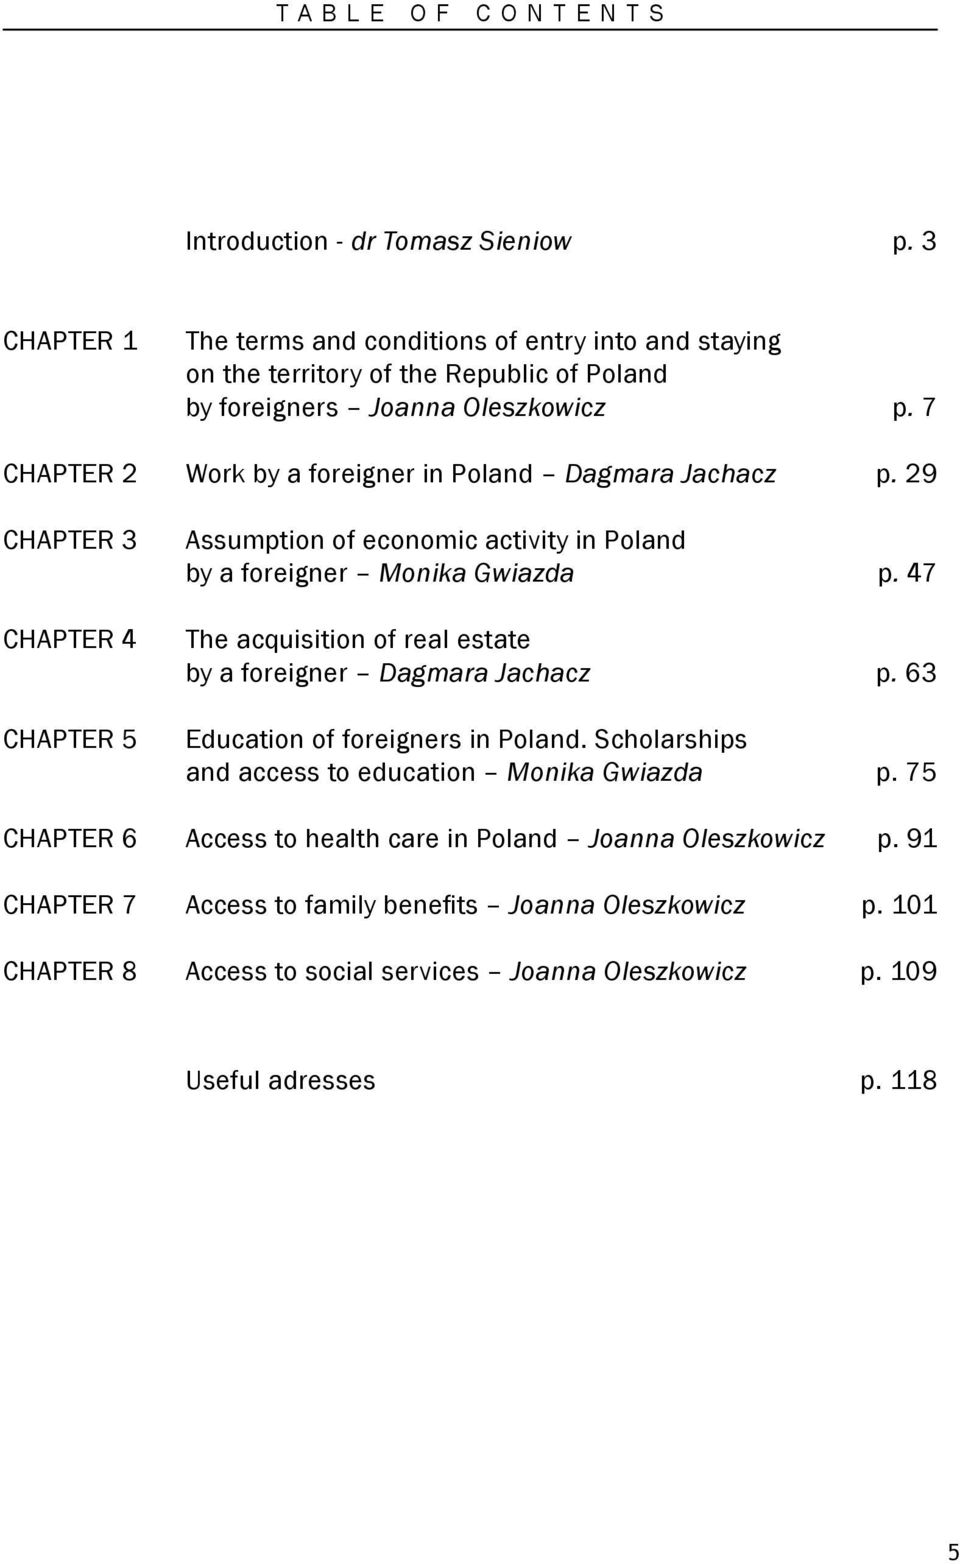 7 Chapter 2 Work by a foreigner in Poland Dagmara Jachacz p. 29 Chapter 3 Chapter 4 Chapter 5 Assumption of economic activity in Poland by a foreigner Monika Gwiazda p.